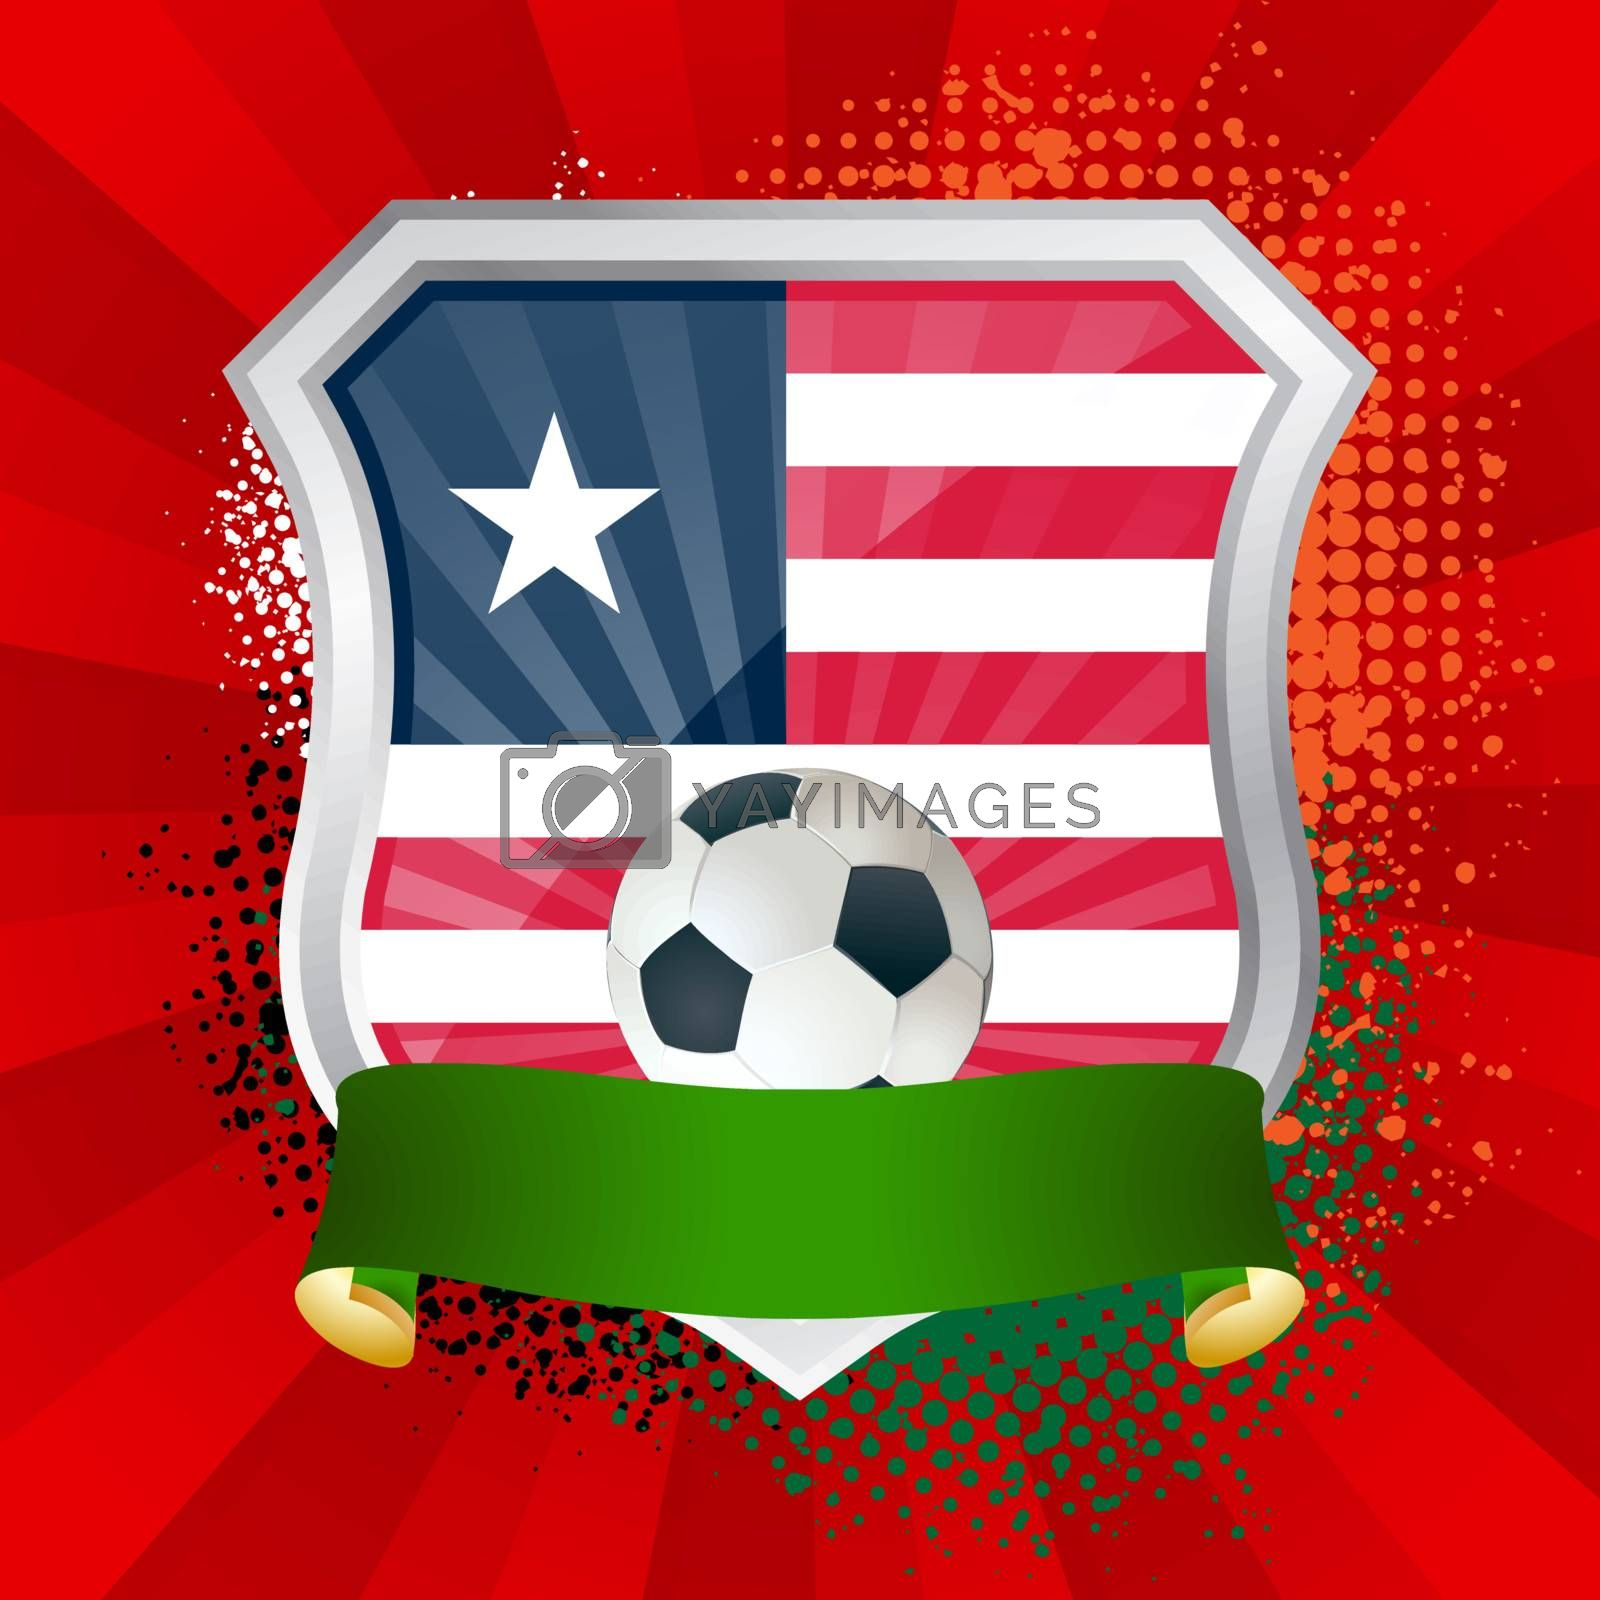 Royalty free image of Shield with flag of  Liberia by Petrov_Vladimir